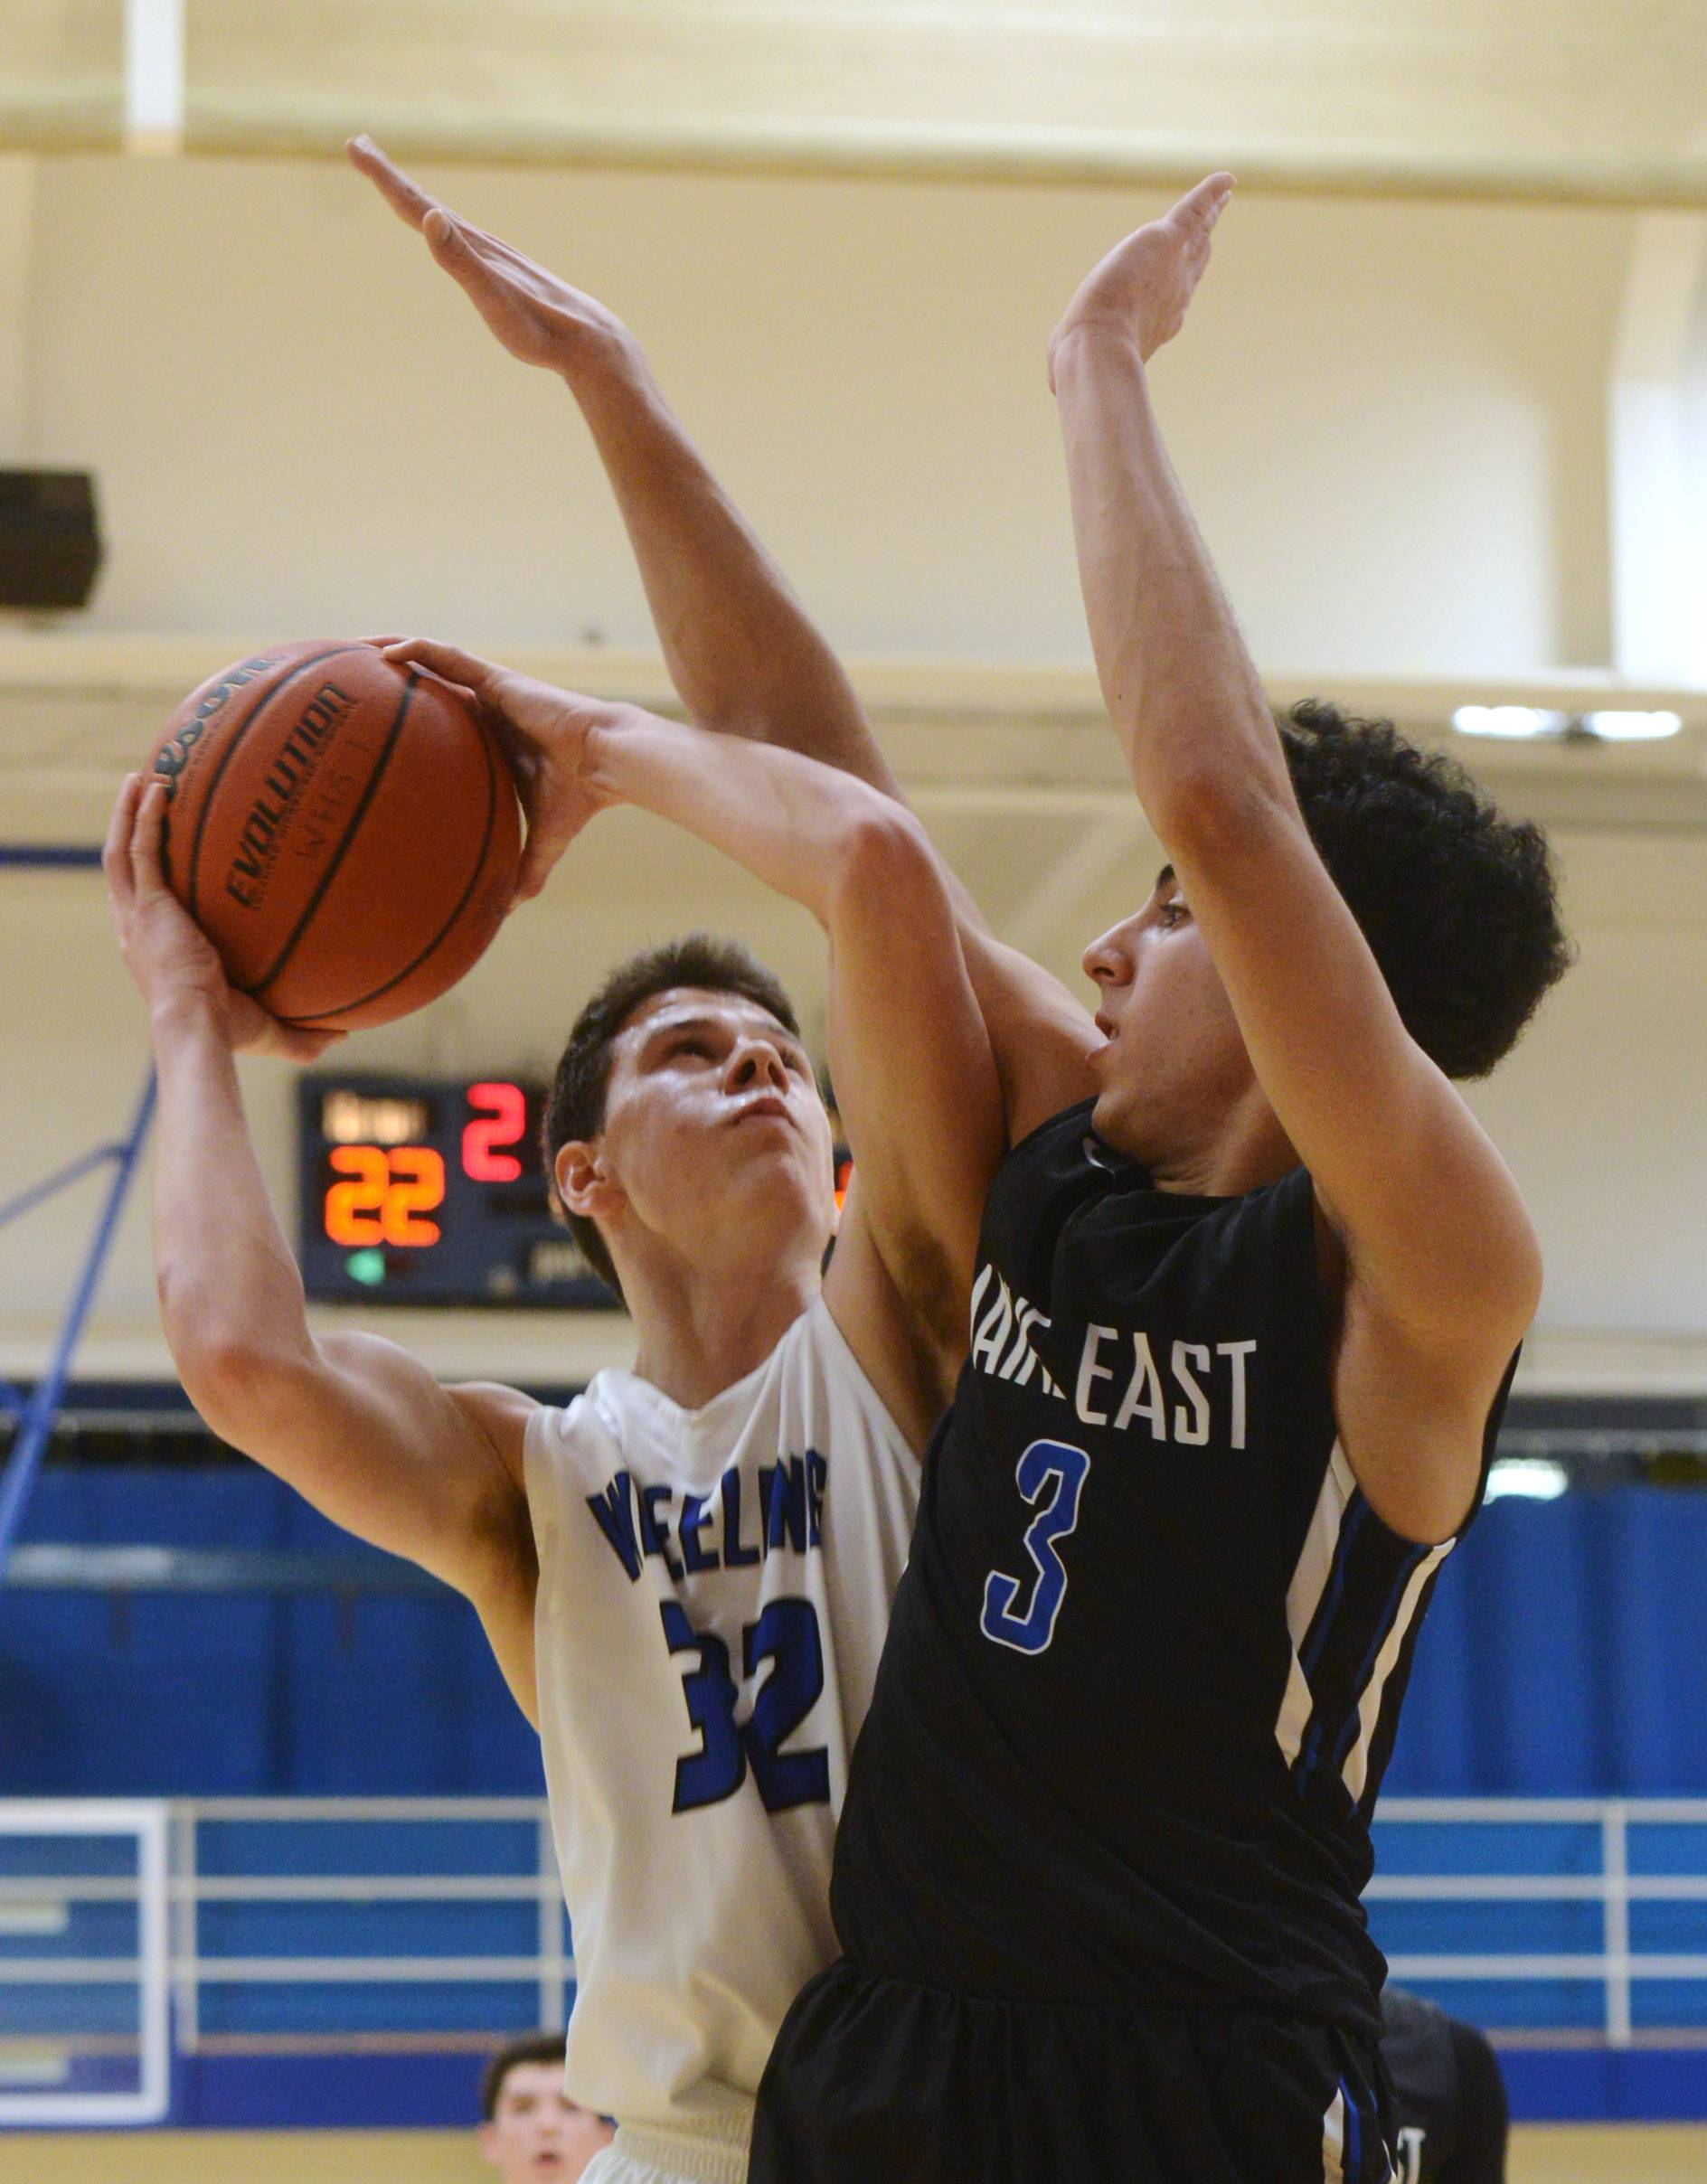 Wheeling's Brandon Zettek, left, drives to the basket against Maine East's Ali Sabet during Tuesday's game at Wheeling.